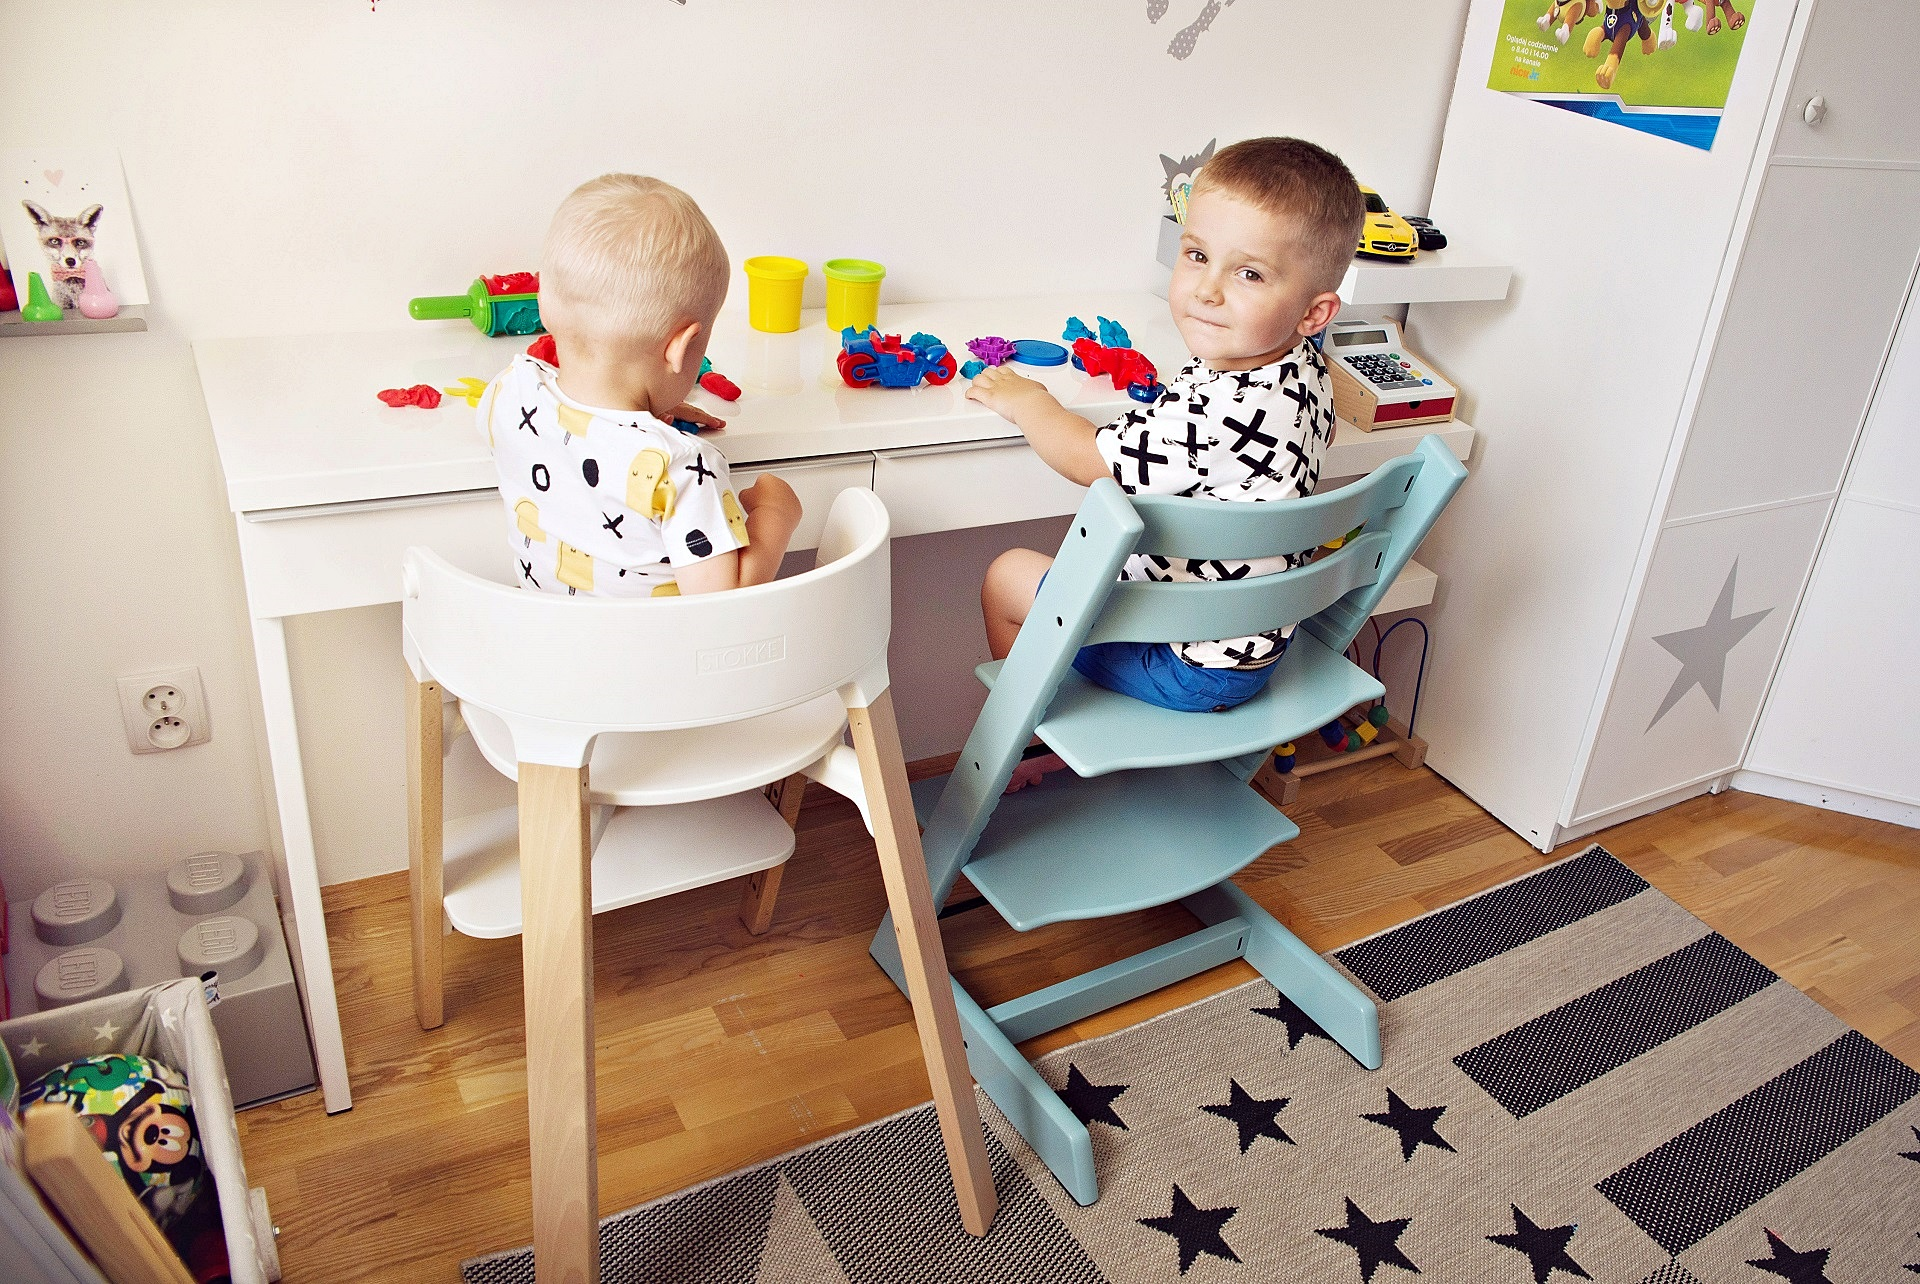 krzes o stokke steps czy tripp trapp kt re wybra. Black Bedroom Furniture Sets. Home Design Ideas